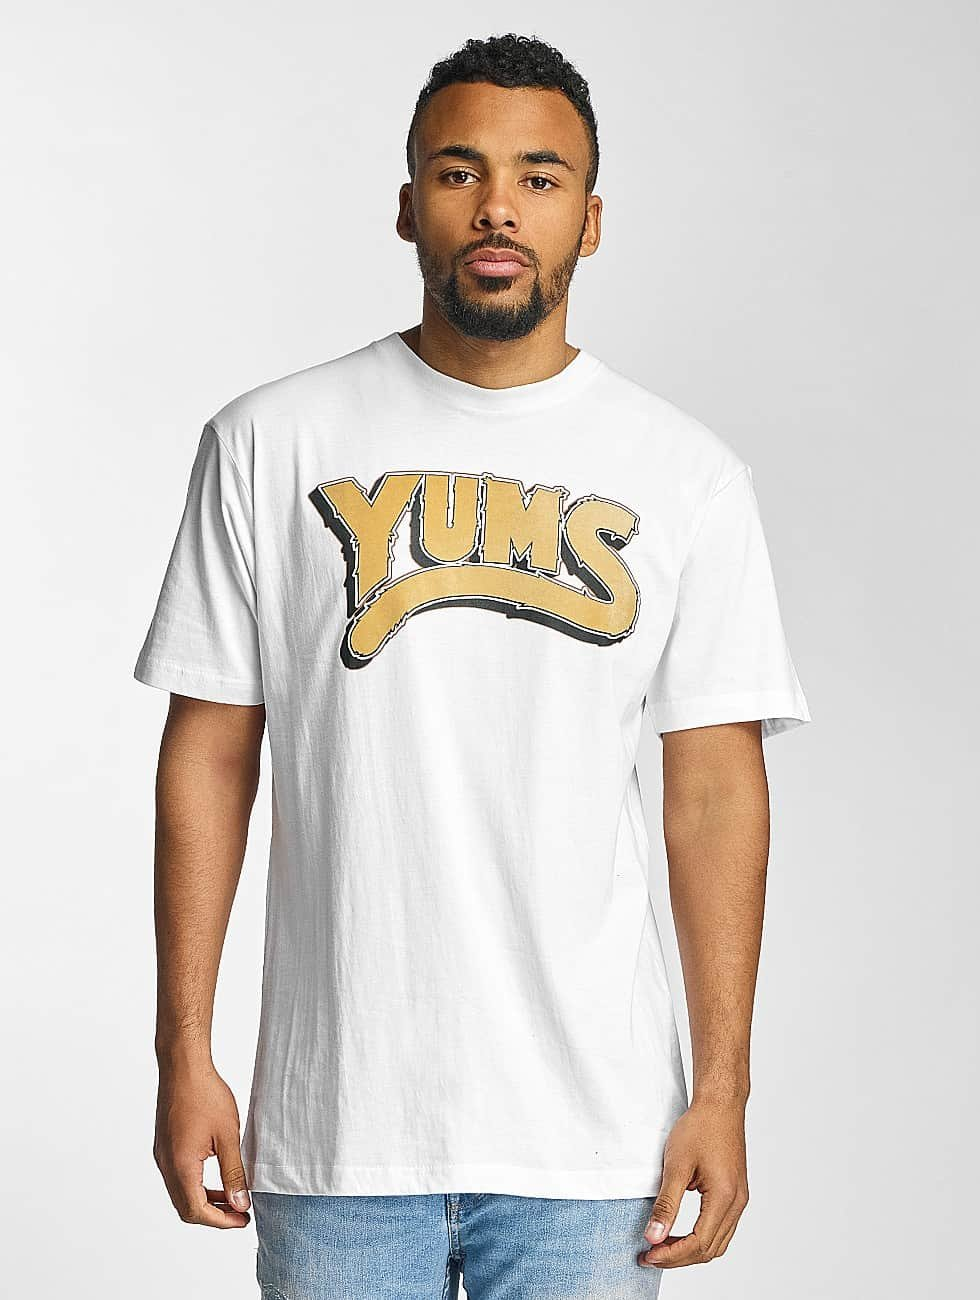 Yums T-Shirt Oh My Lion white